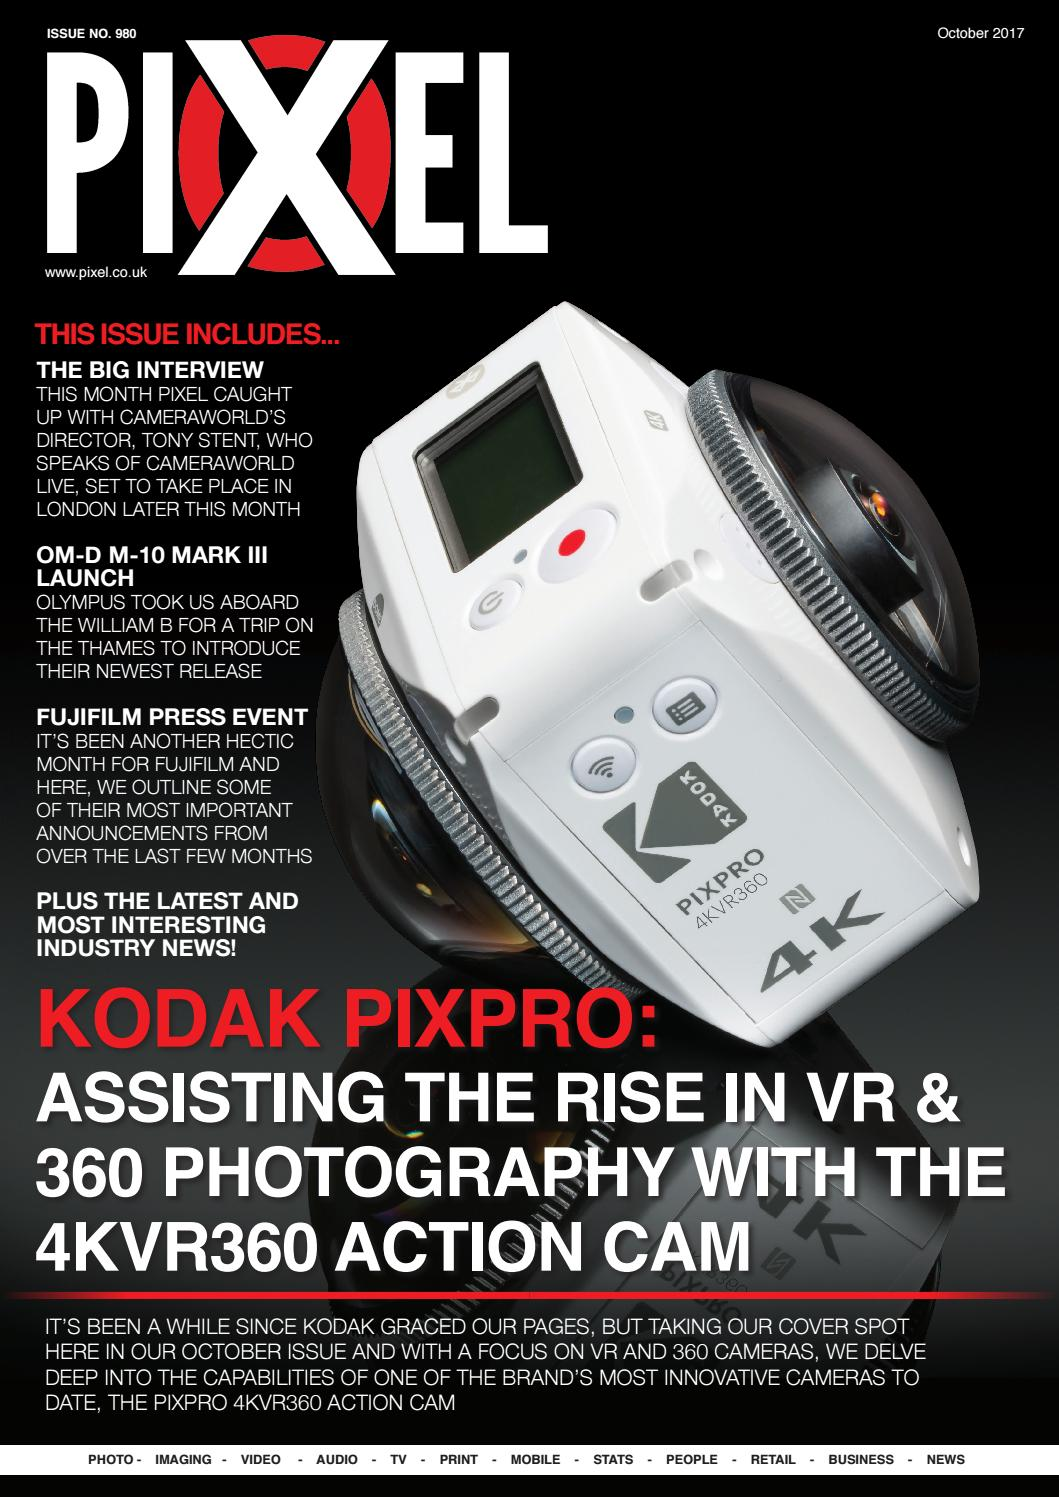 Pixel 980, Oct 2017 by Life Media Group - issuu